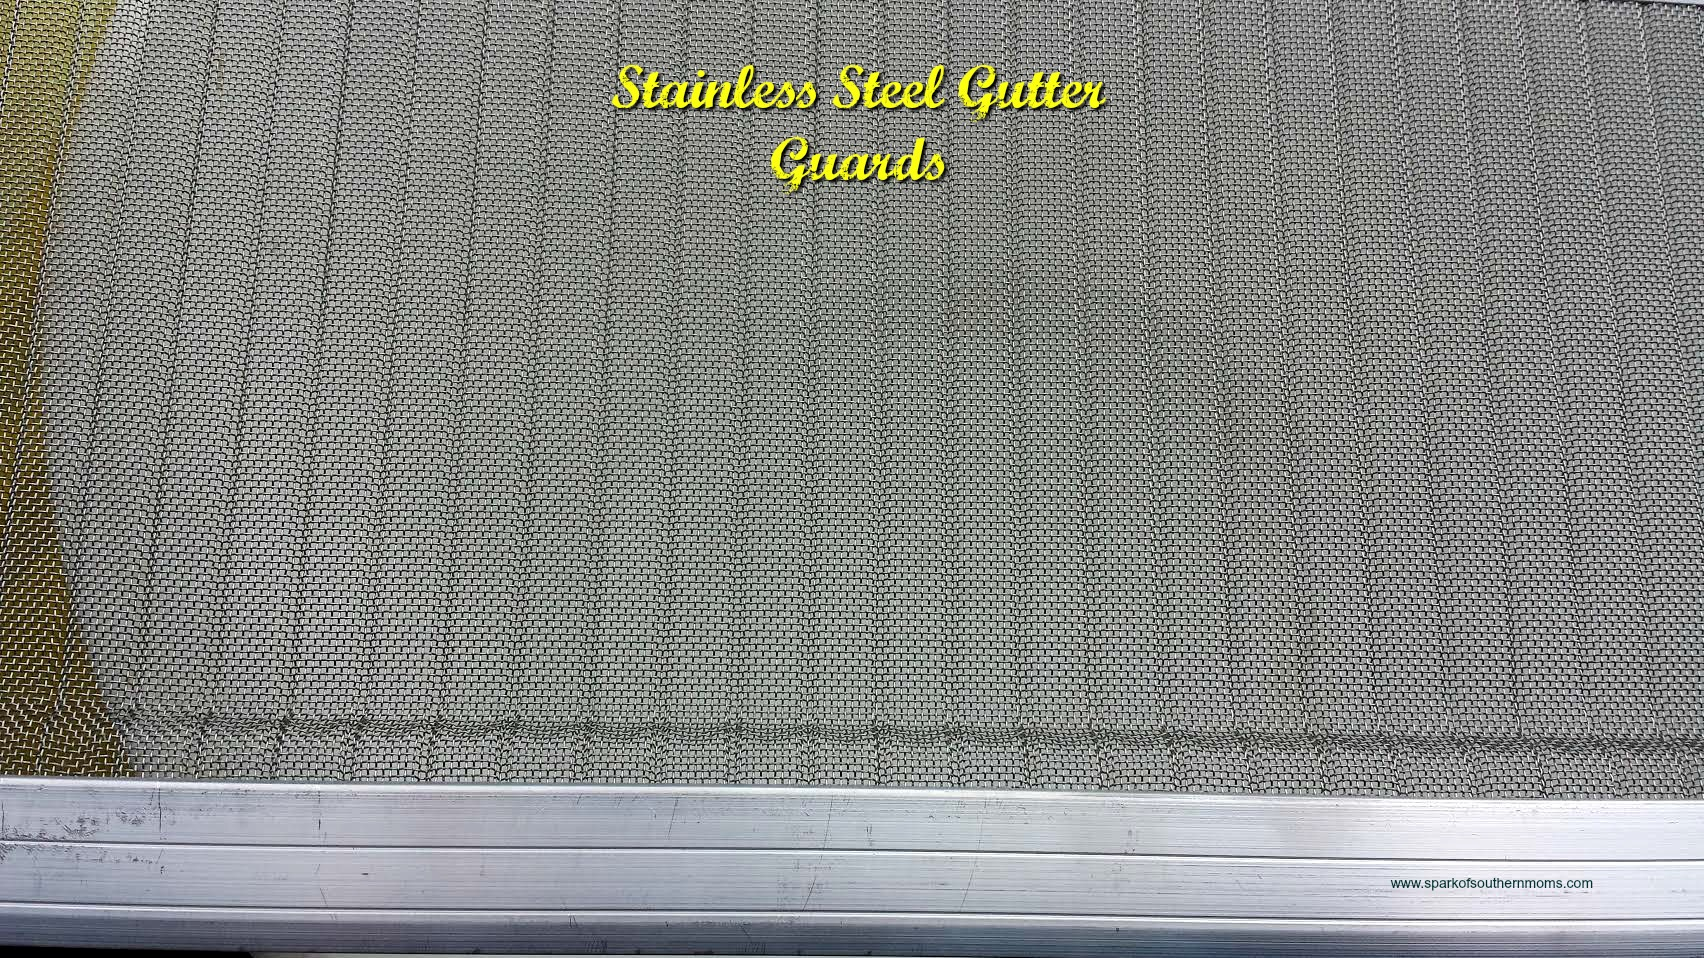 Stainless Steel Gutter Guards Spark Of Southern Moms